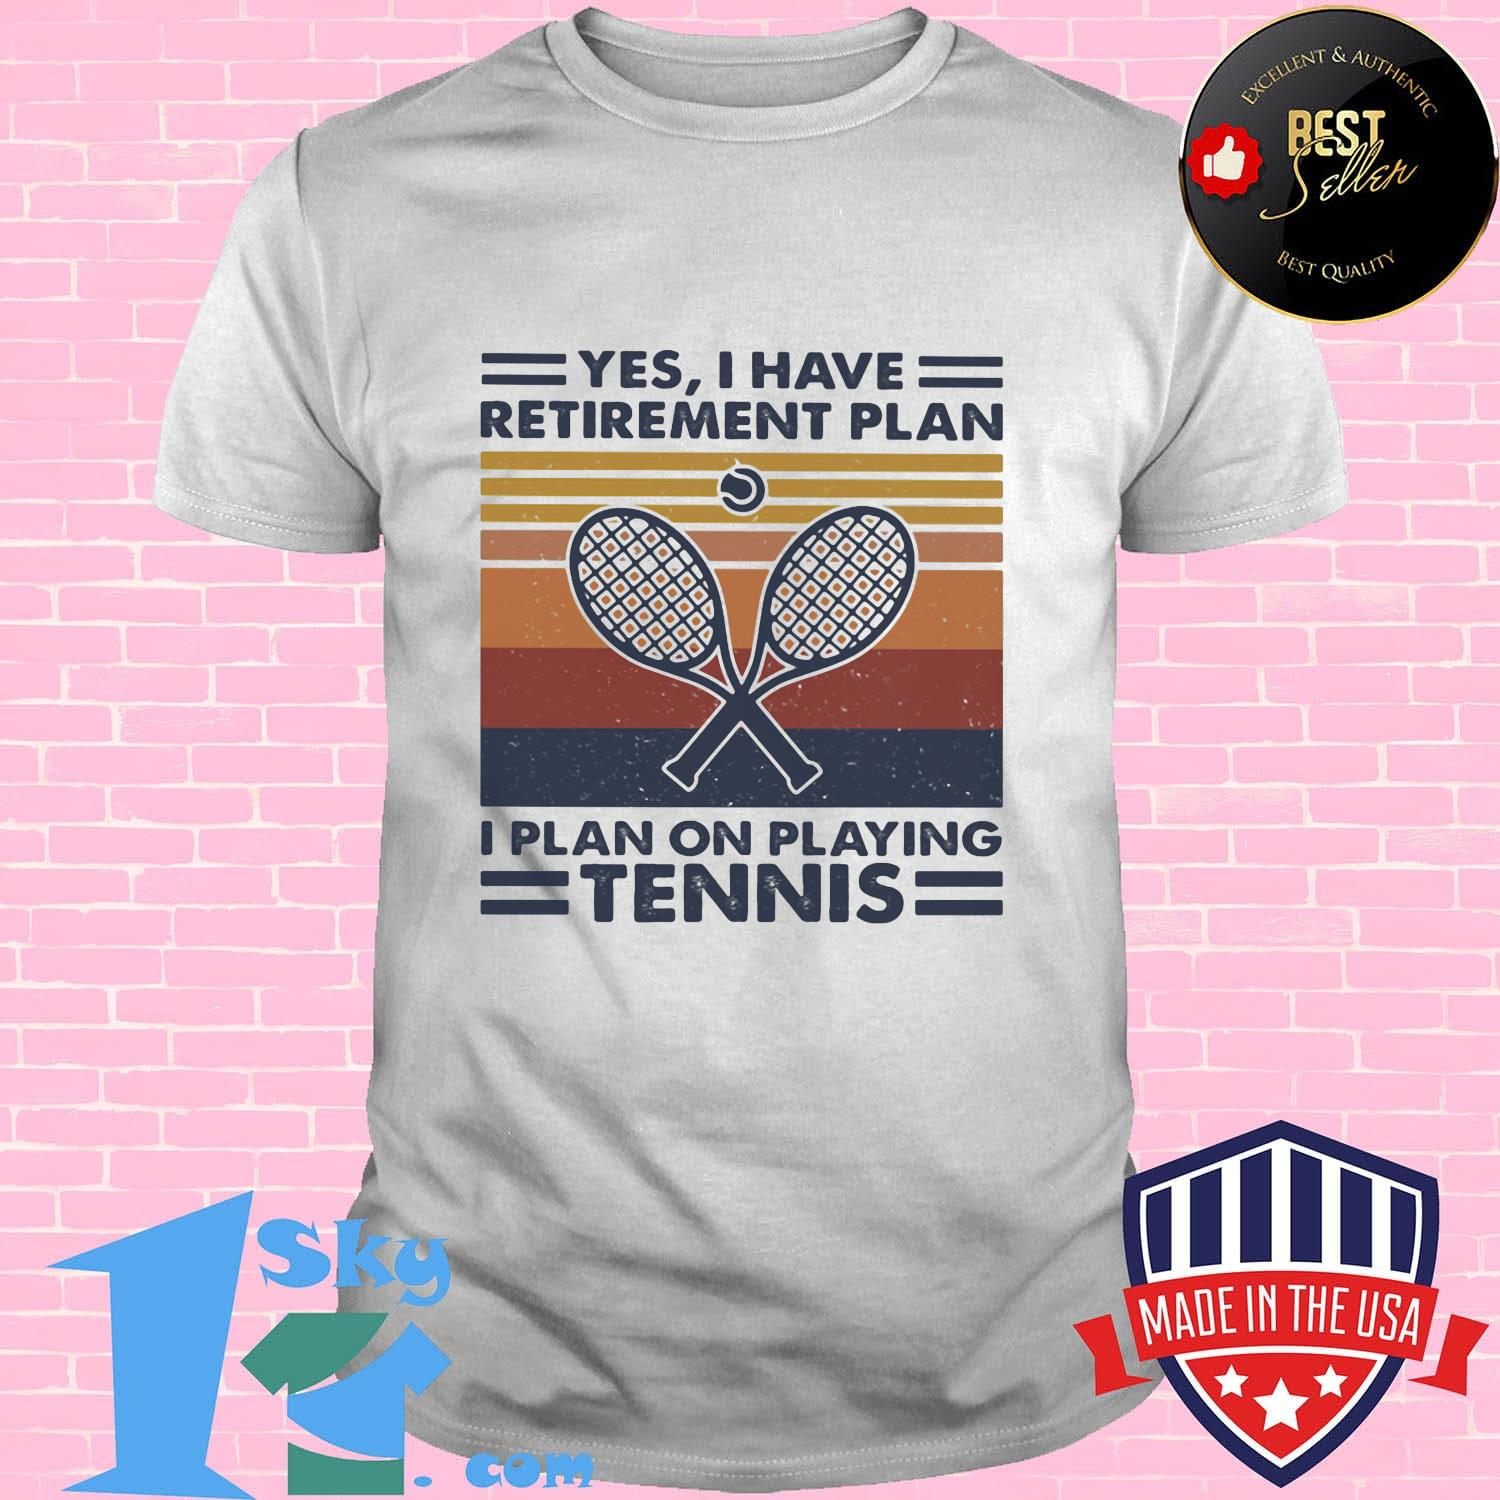 9aa62c25 yes i have retirement plan i plan on playing tennis vintage retro shirt unisex - Shop trending - We offer all trend shirts - 1SkyTee